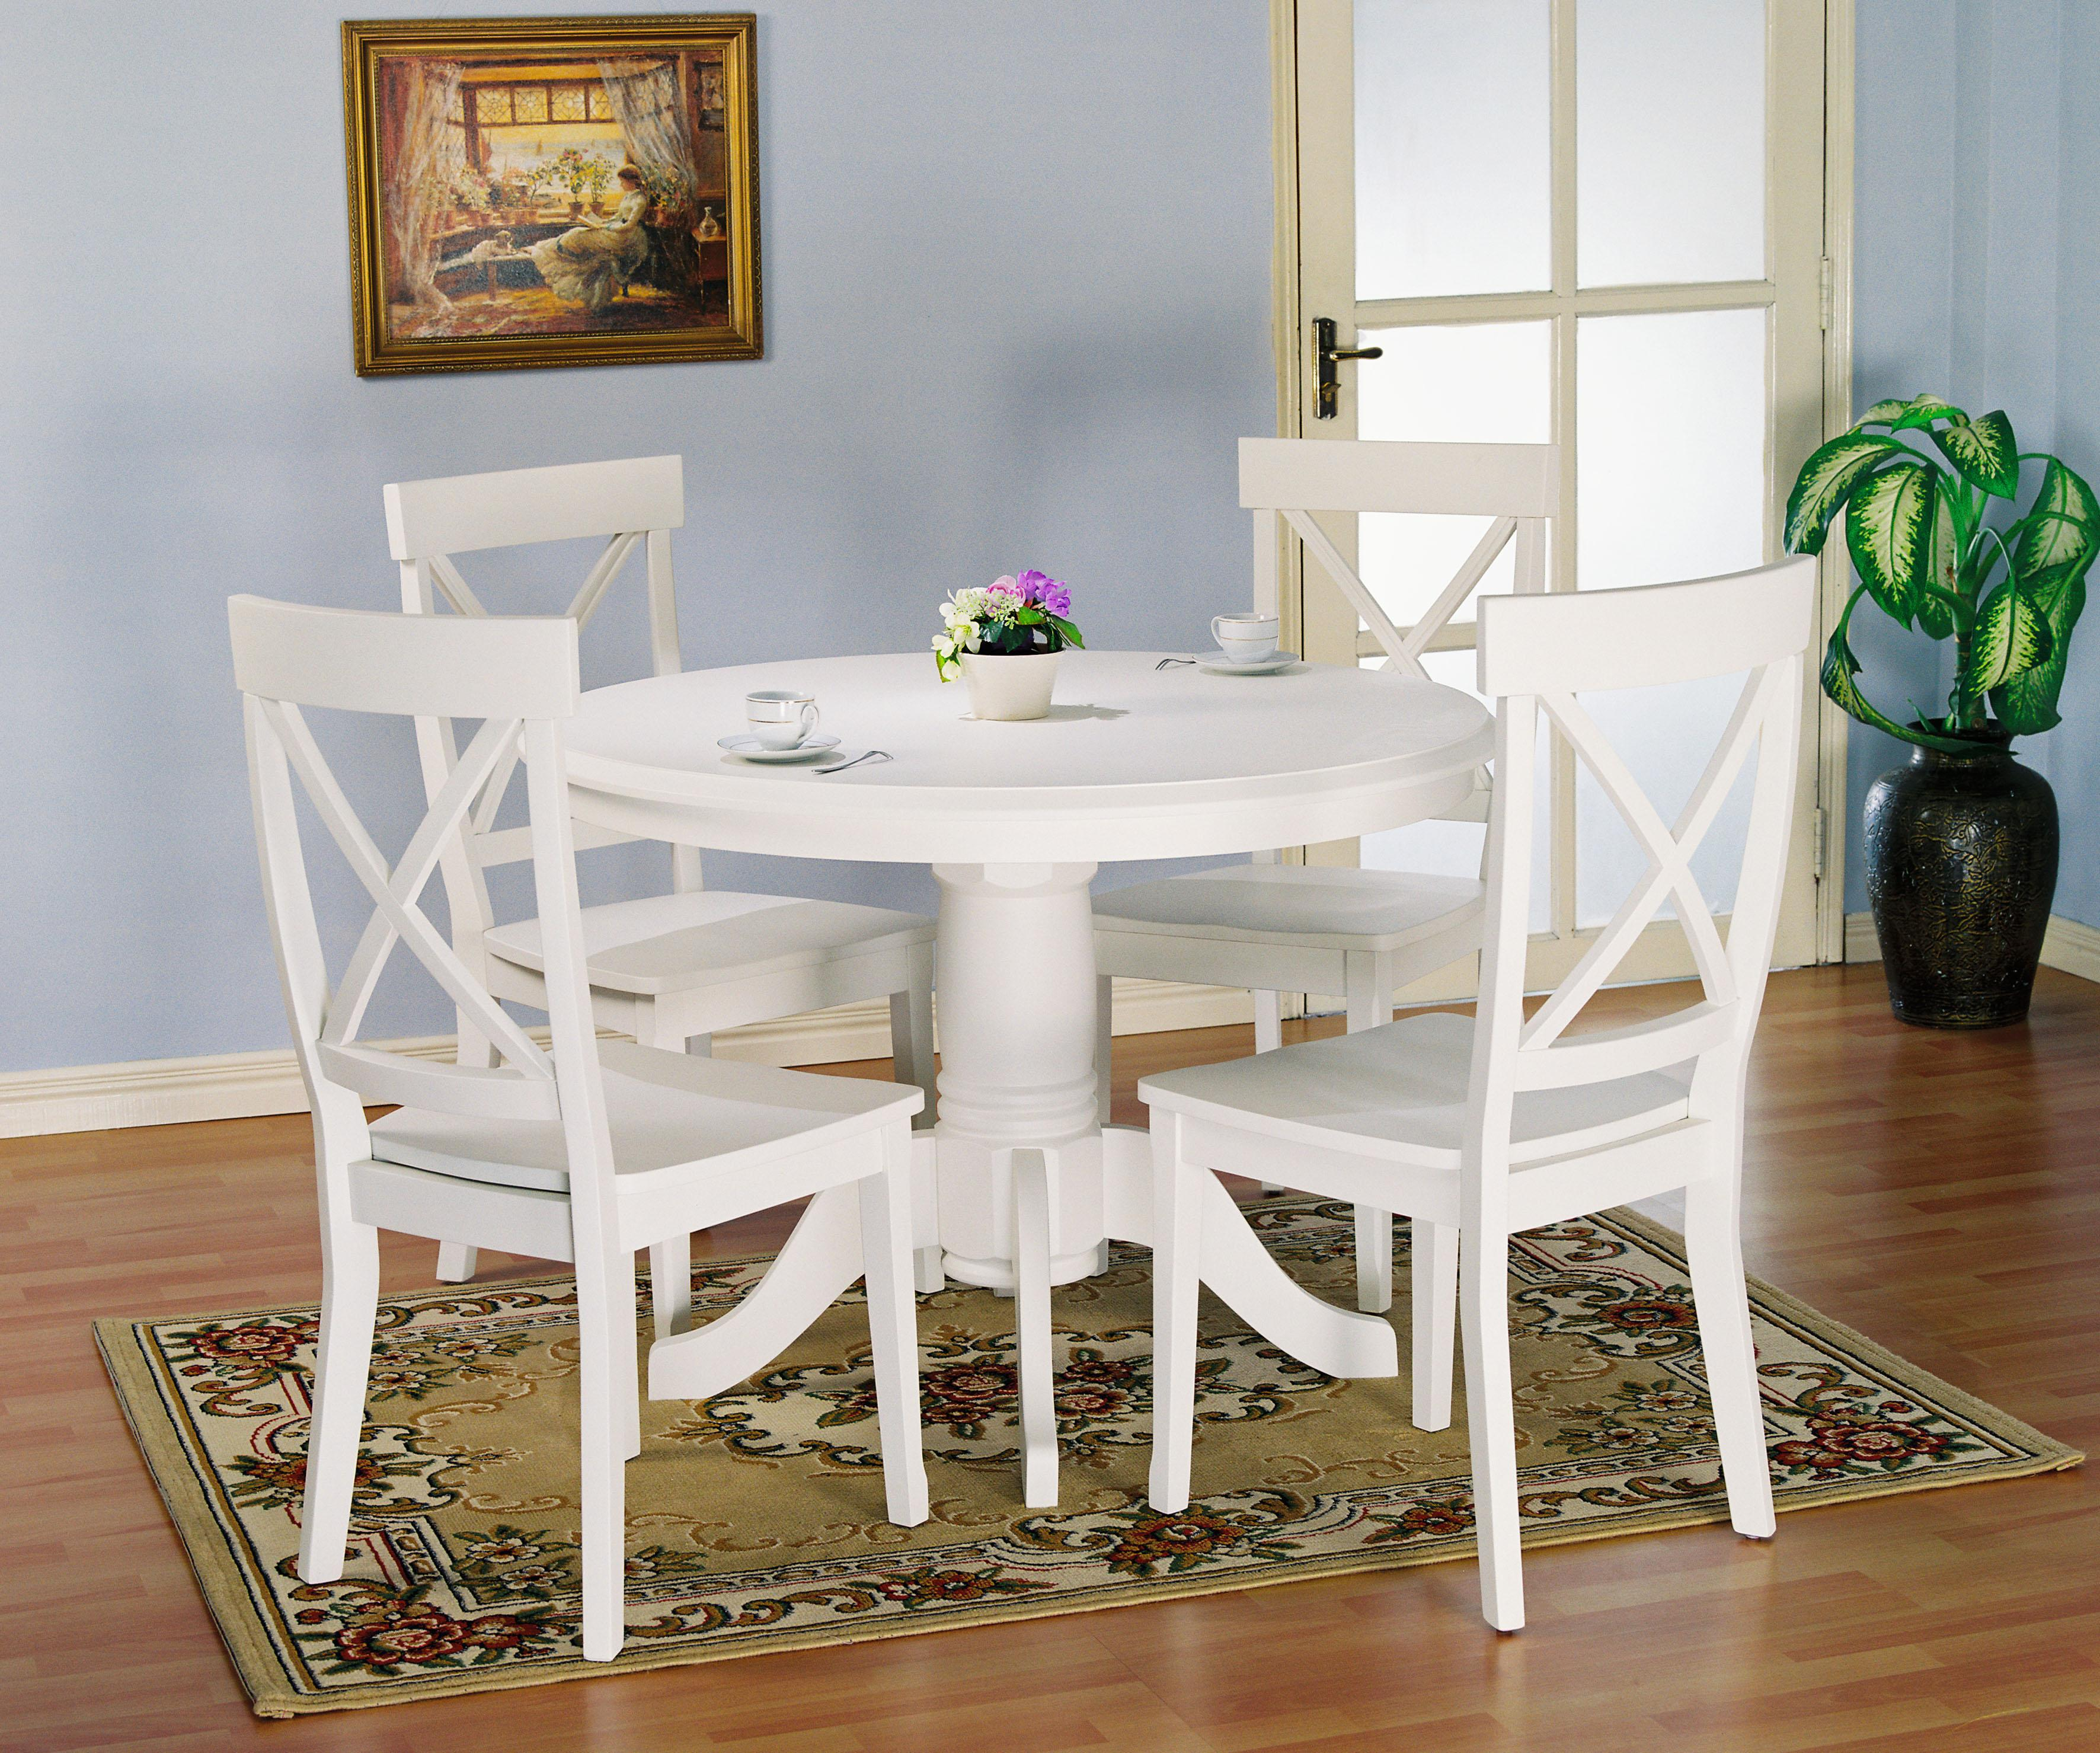 Holland house 1280 5 piece round kitchen table and x back side holland house 1280 5 piece round kitchen table and x back side chairs set godby home furnishings dining 5 piece set noblesville carmel avon workwithnaturefo